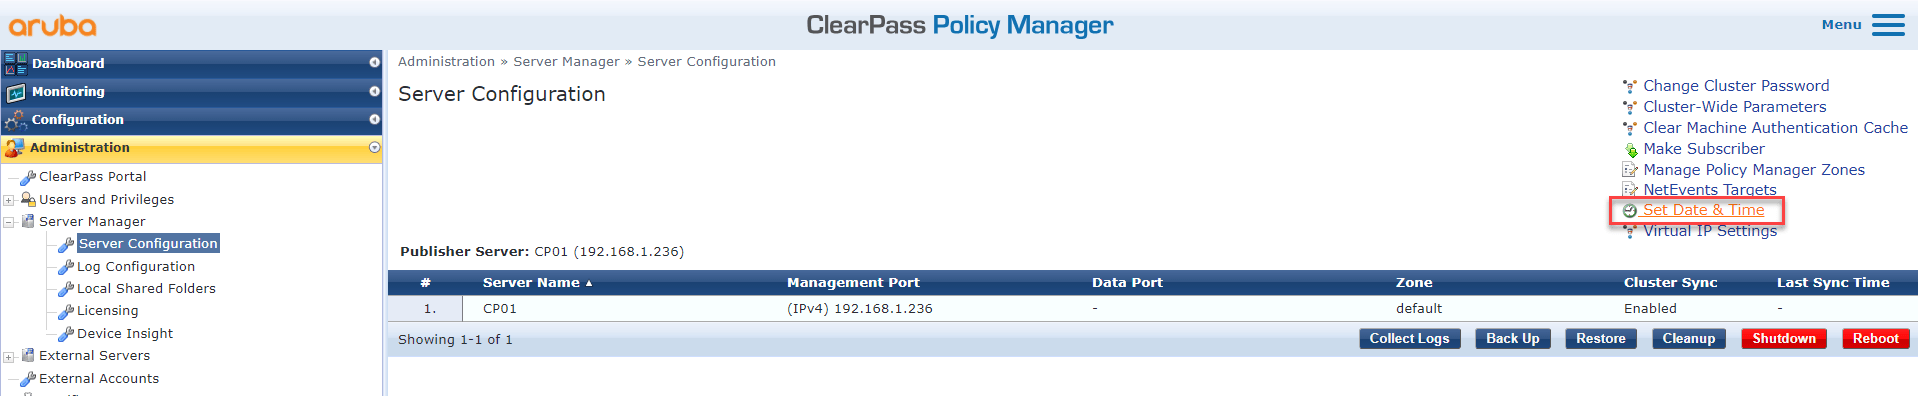 EAP-PEAP Authentication With ClearPass And AD